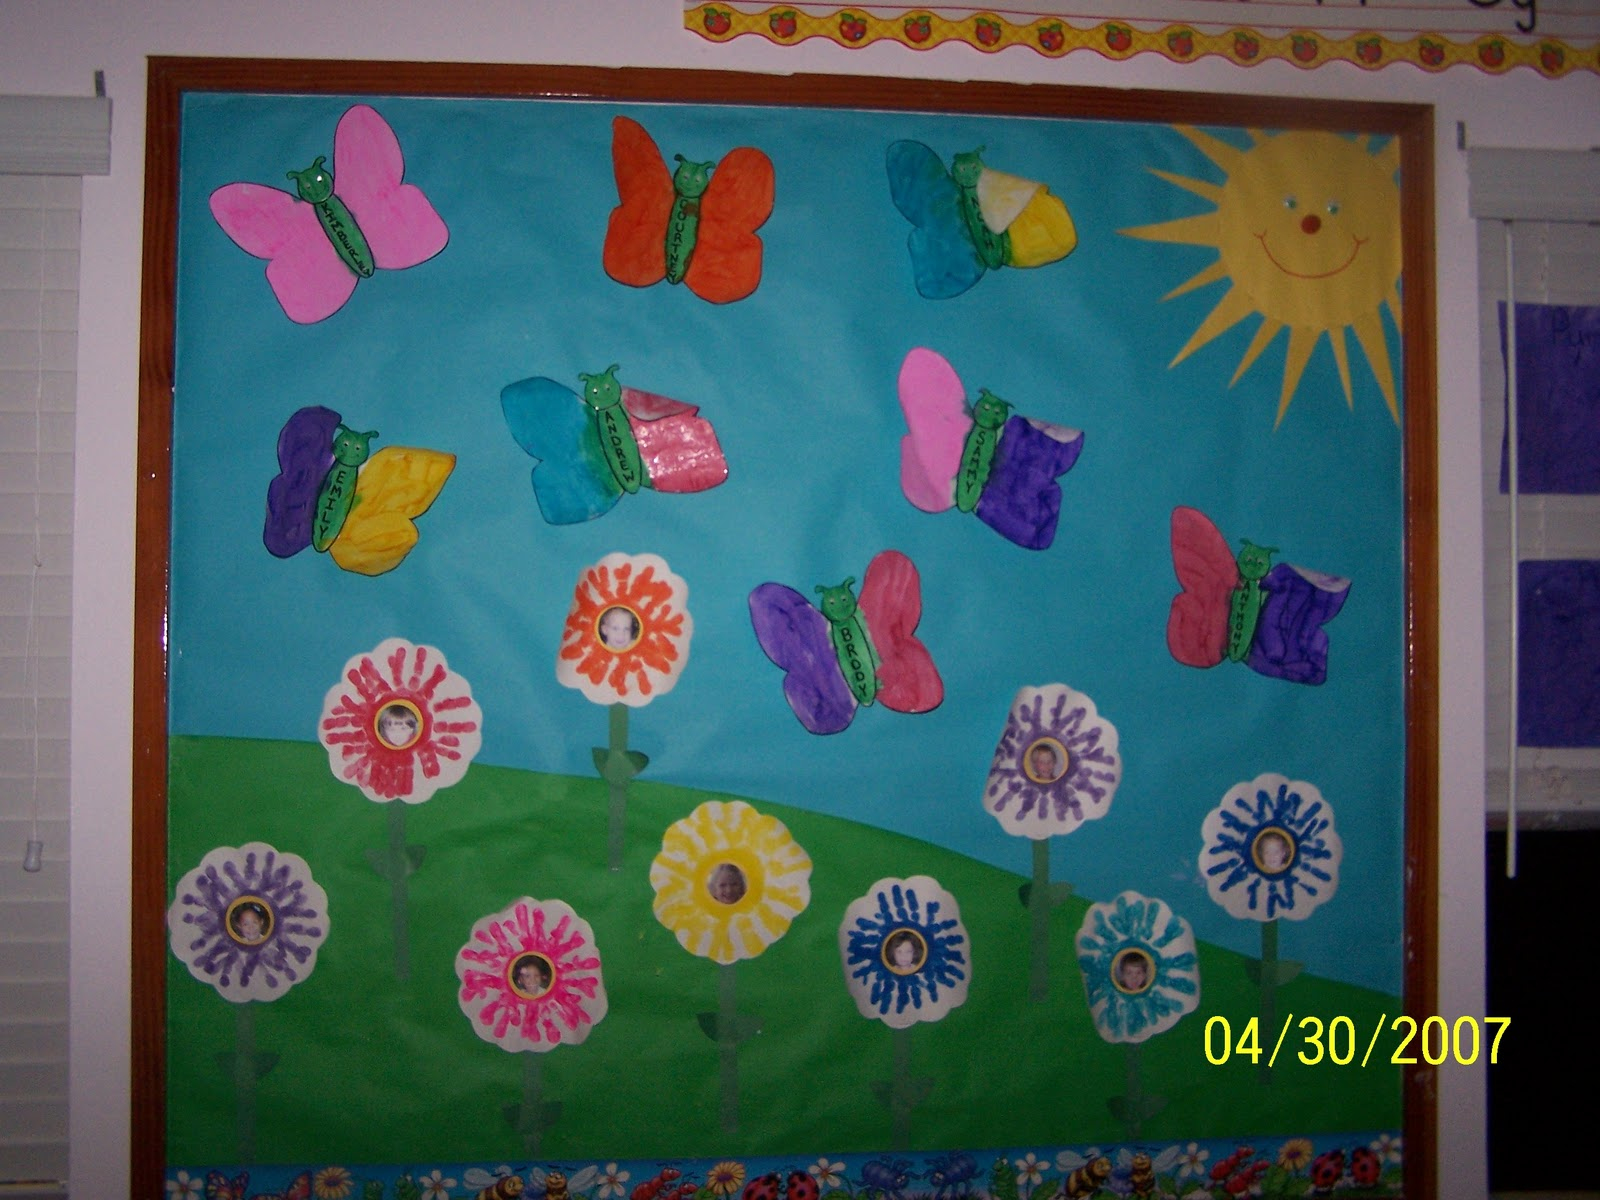 Squish Preschool Ideas: Decorate Class with Student's Artwork